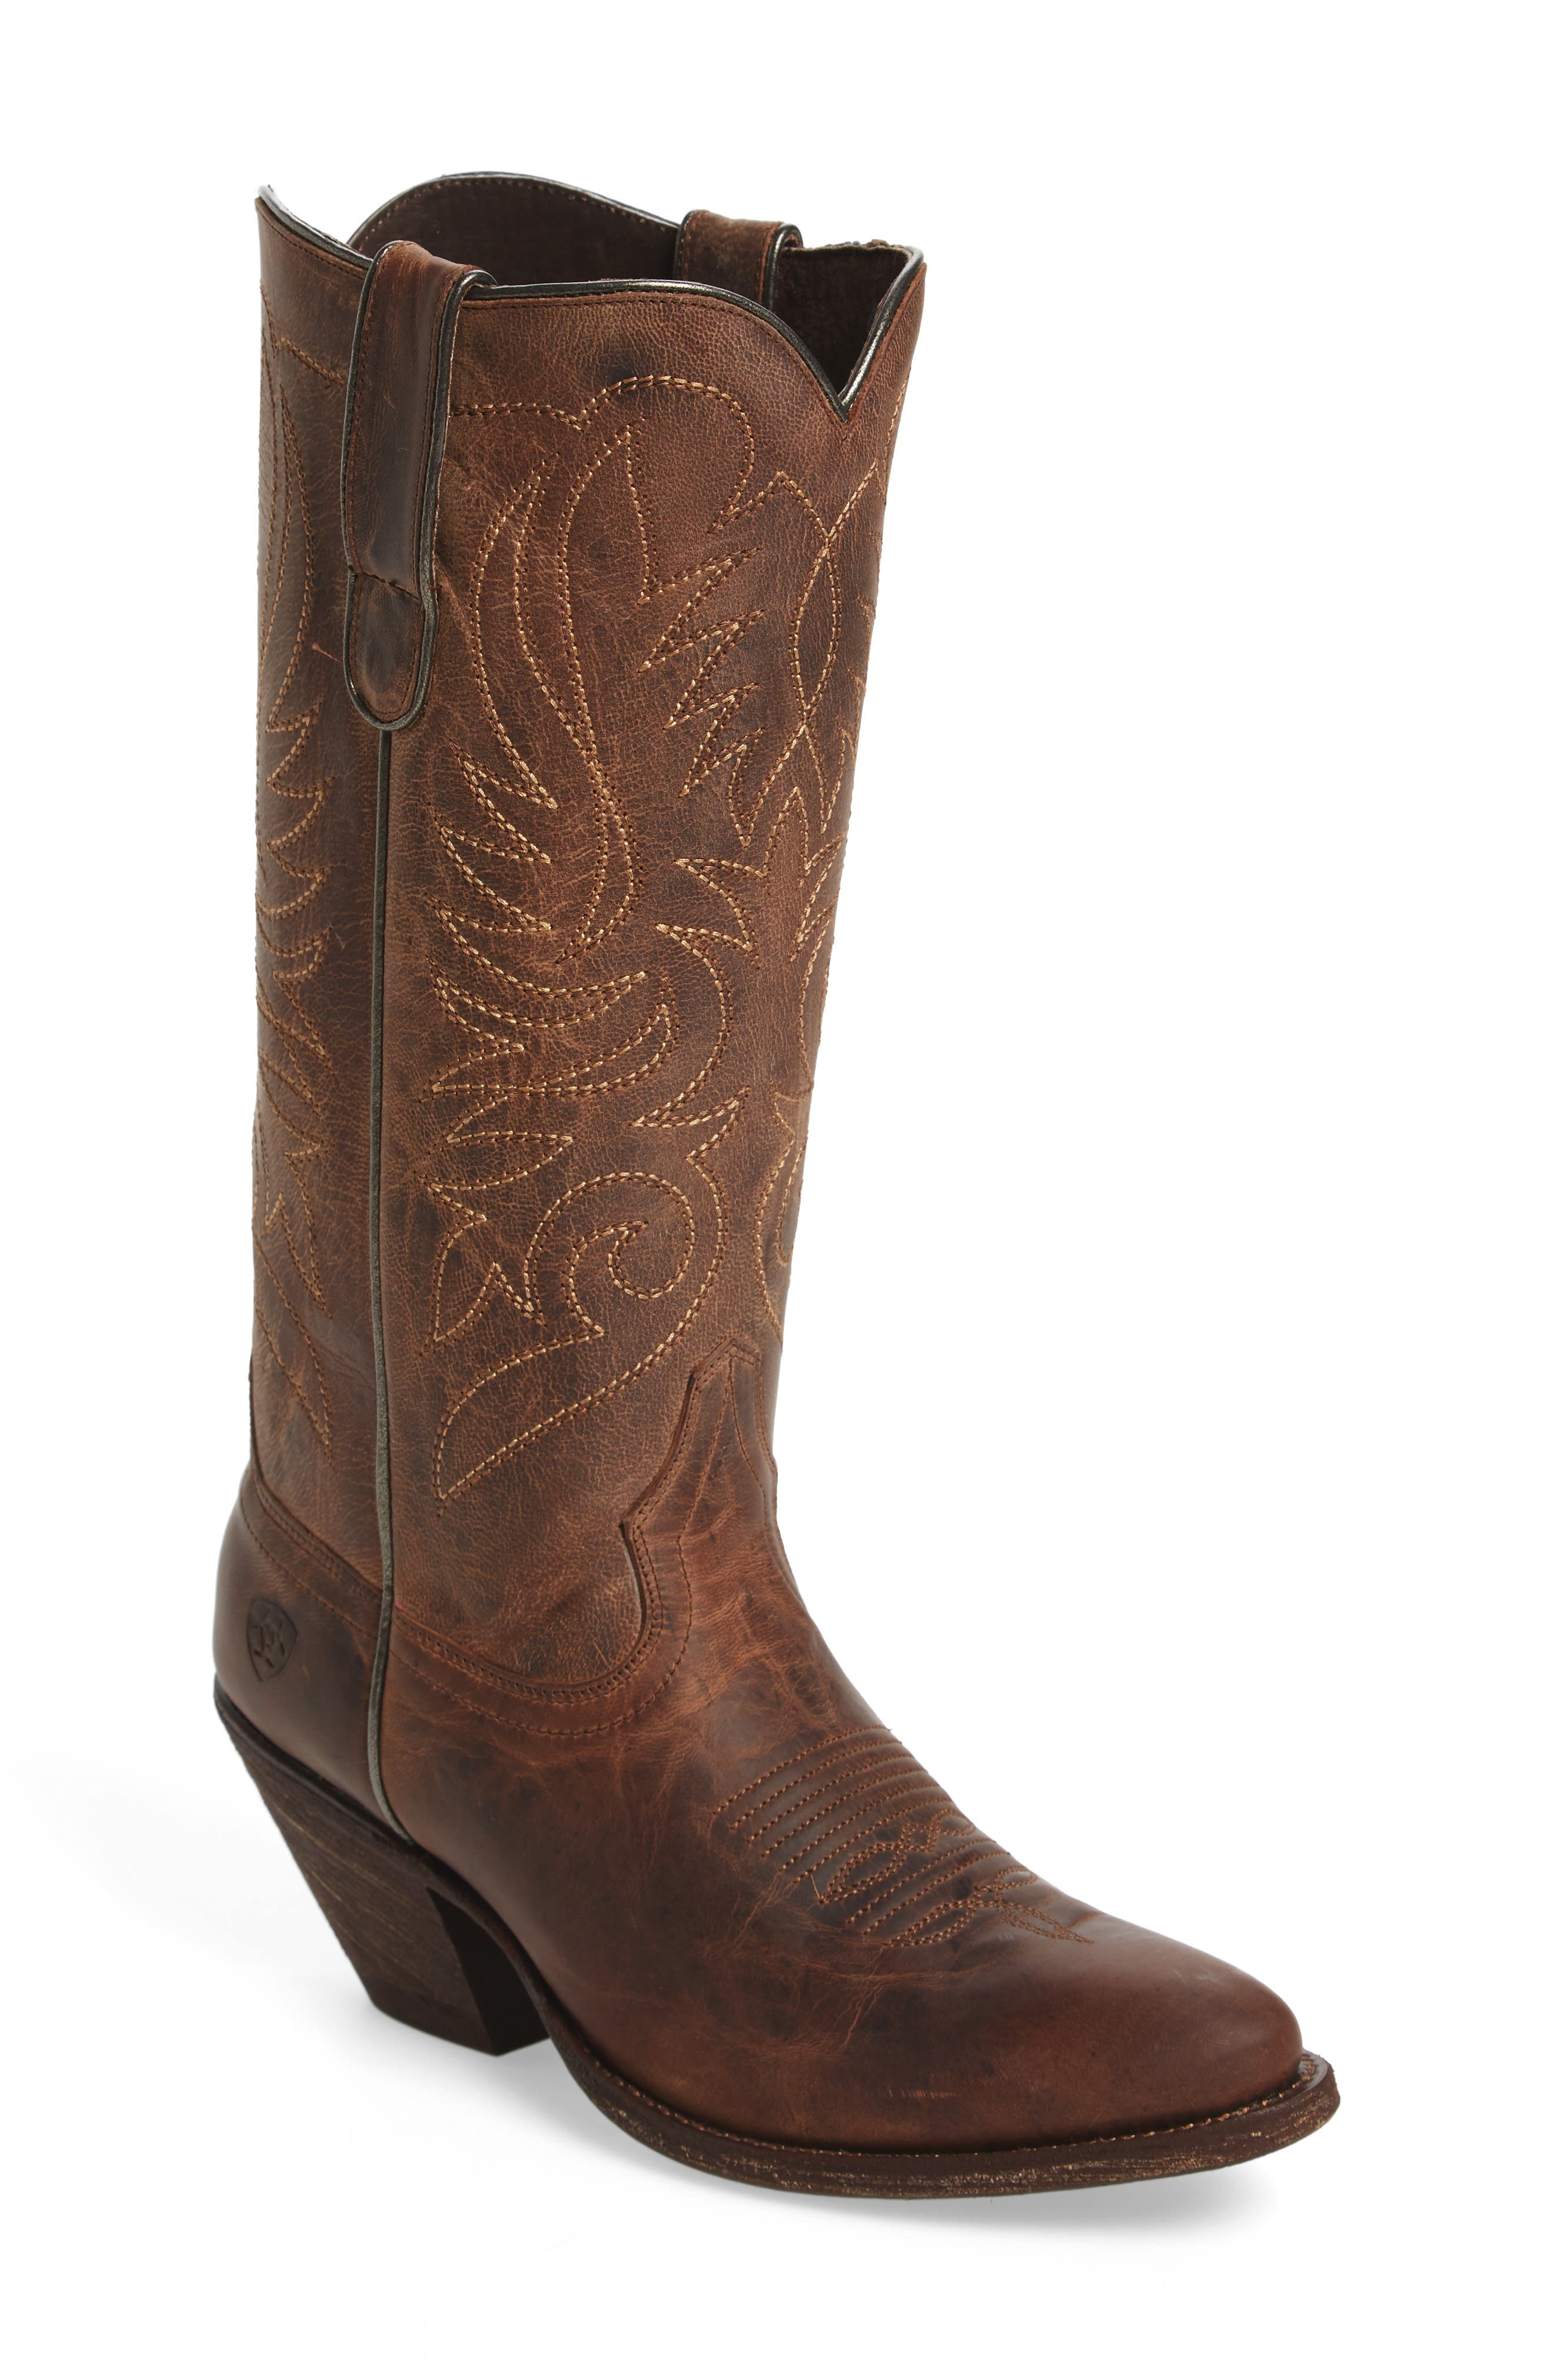 Alternate Image 1 Selected - Ariat Shindig Western Boot (Women)